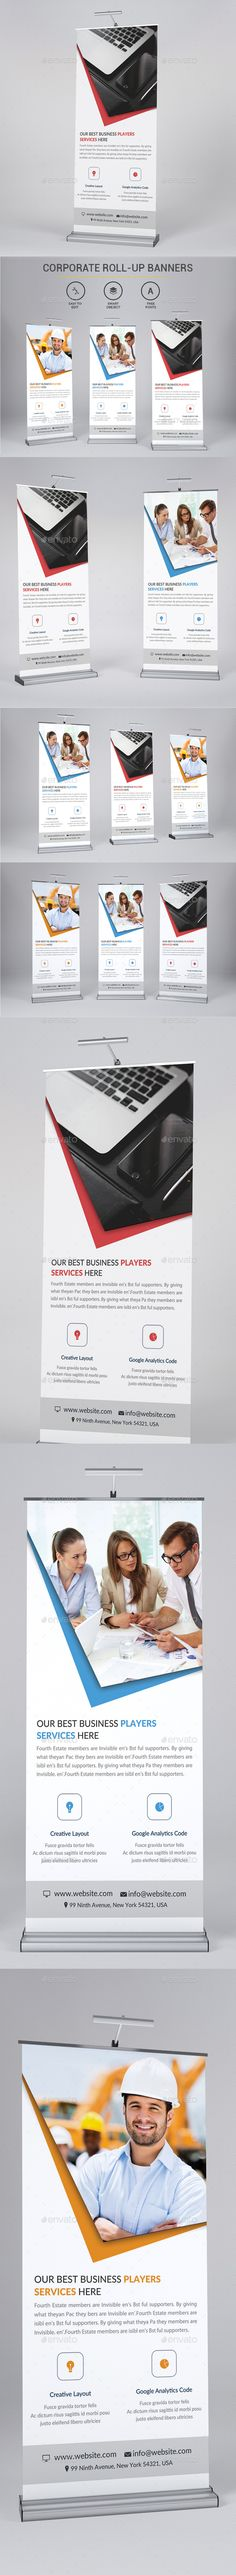 Corporate Rollup Banner Template PSD #design Download: http://graphicriver.net/item/corporate-rollup-bannerg/13833687?ref=ksioks